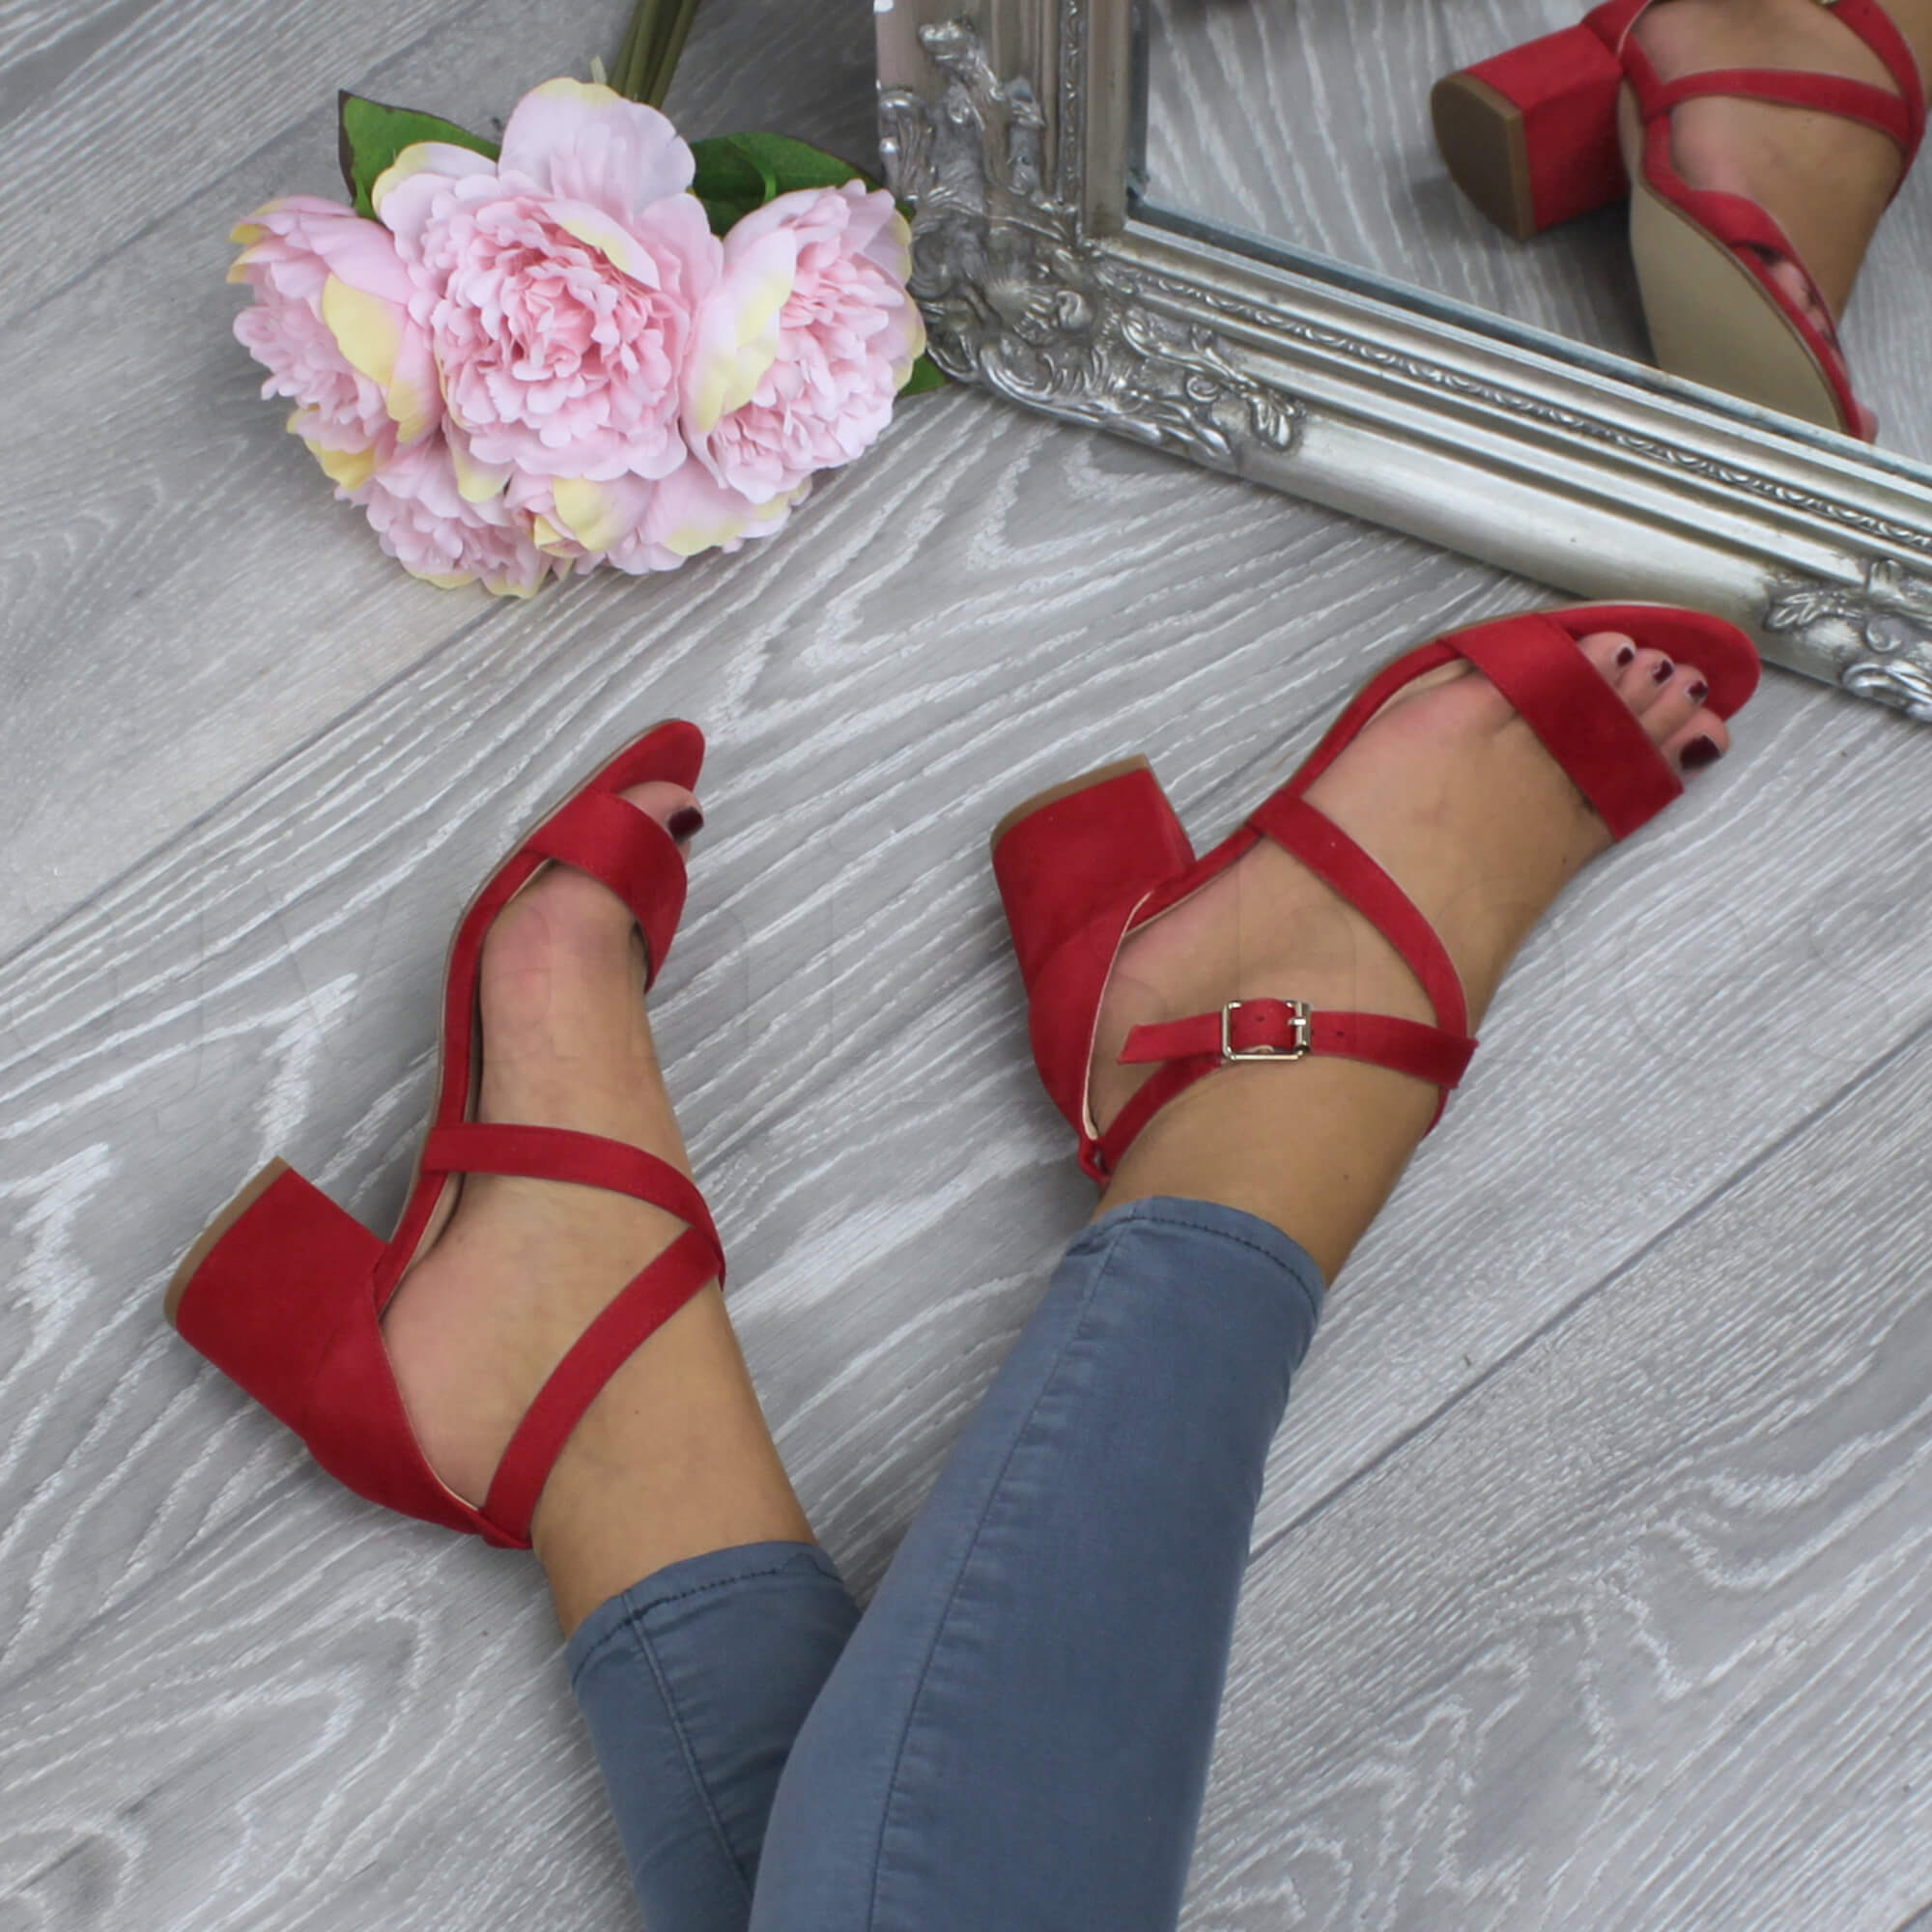 WOMENS-LADIES-MID-LOW-BLOCK-HEEL-CROSS-STRAPS-PARTY-STRAPPY-SANDALS-SHOES-SIZE thumbnail 65